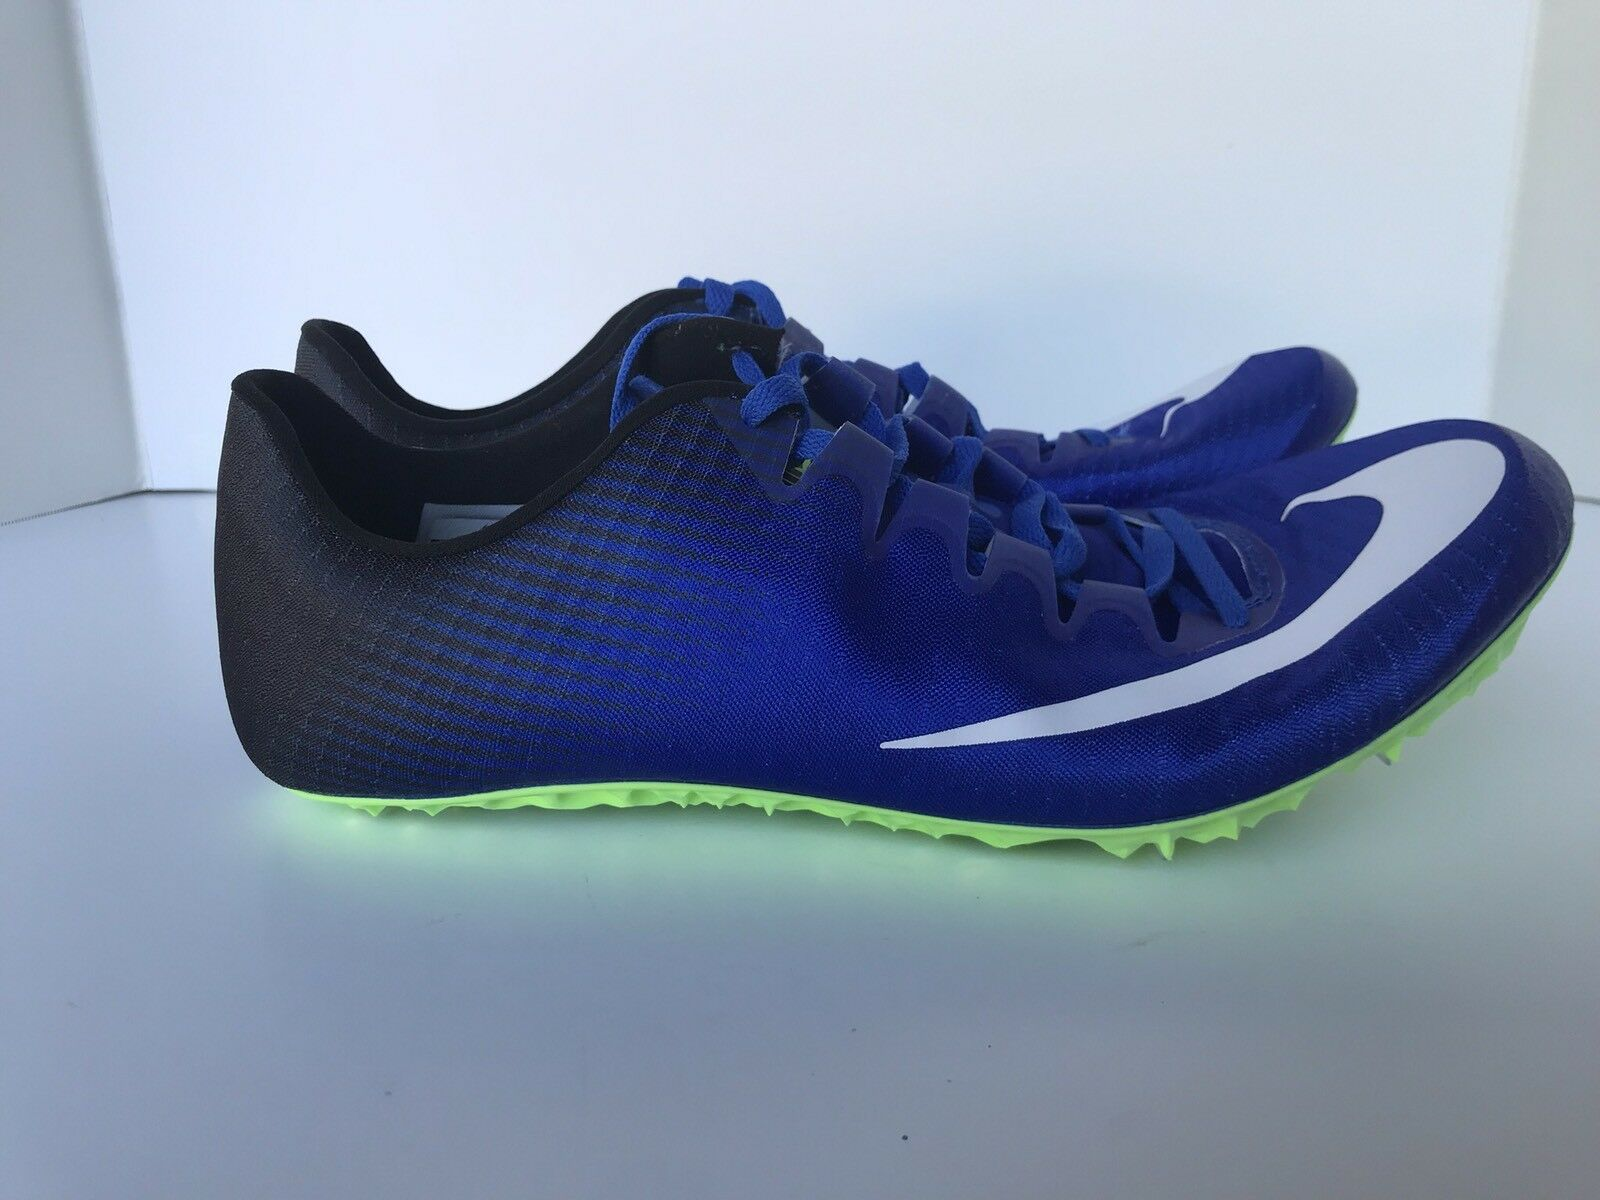 Nike Sz 12 Zoom Superfly Elite Racing Spikes Track Sprint Shoes 835996-413